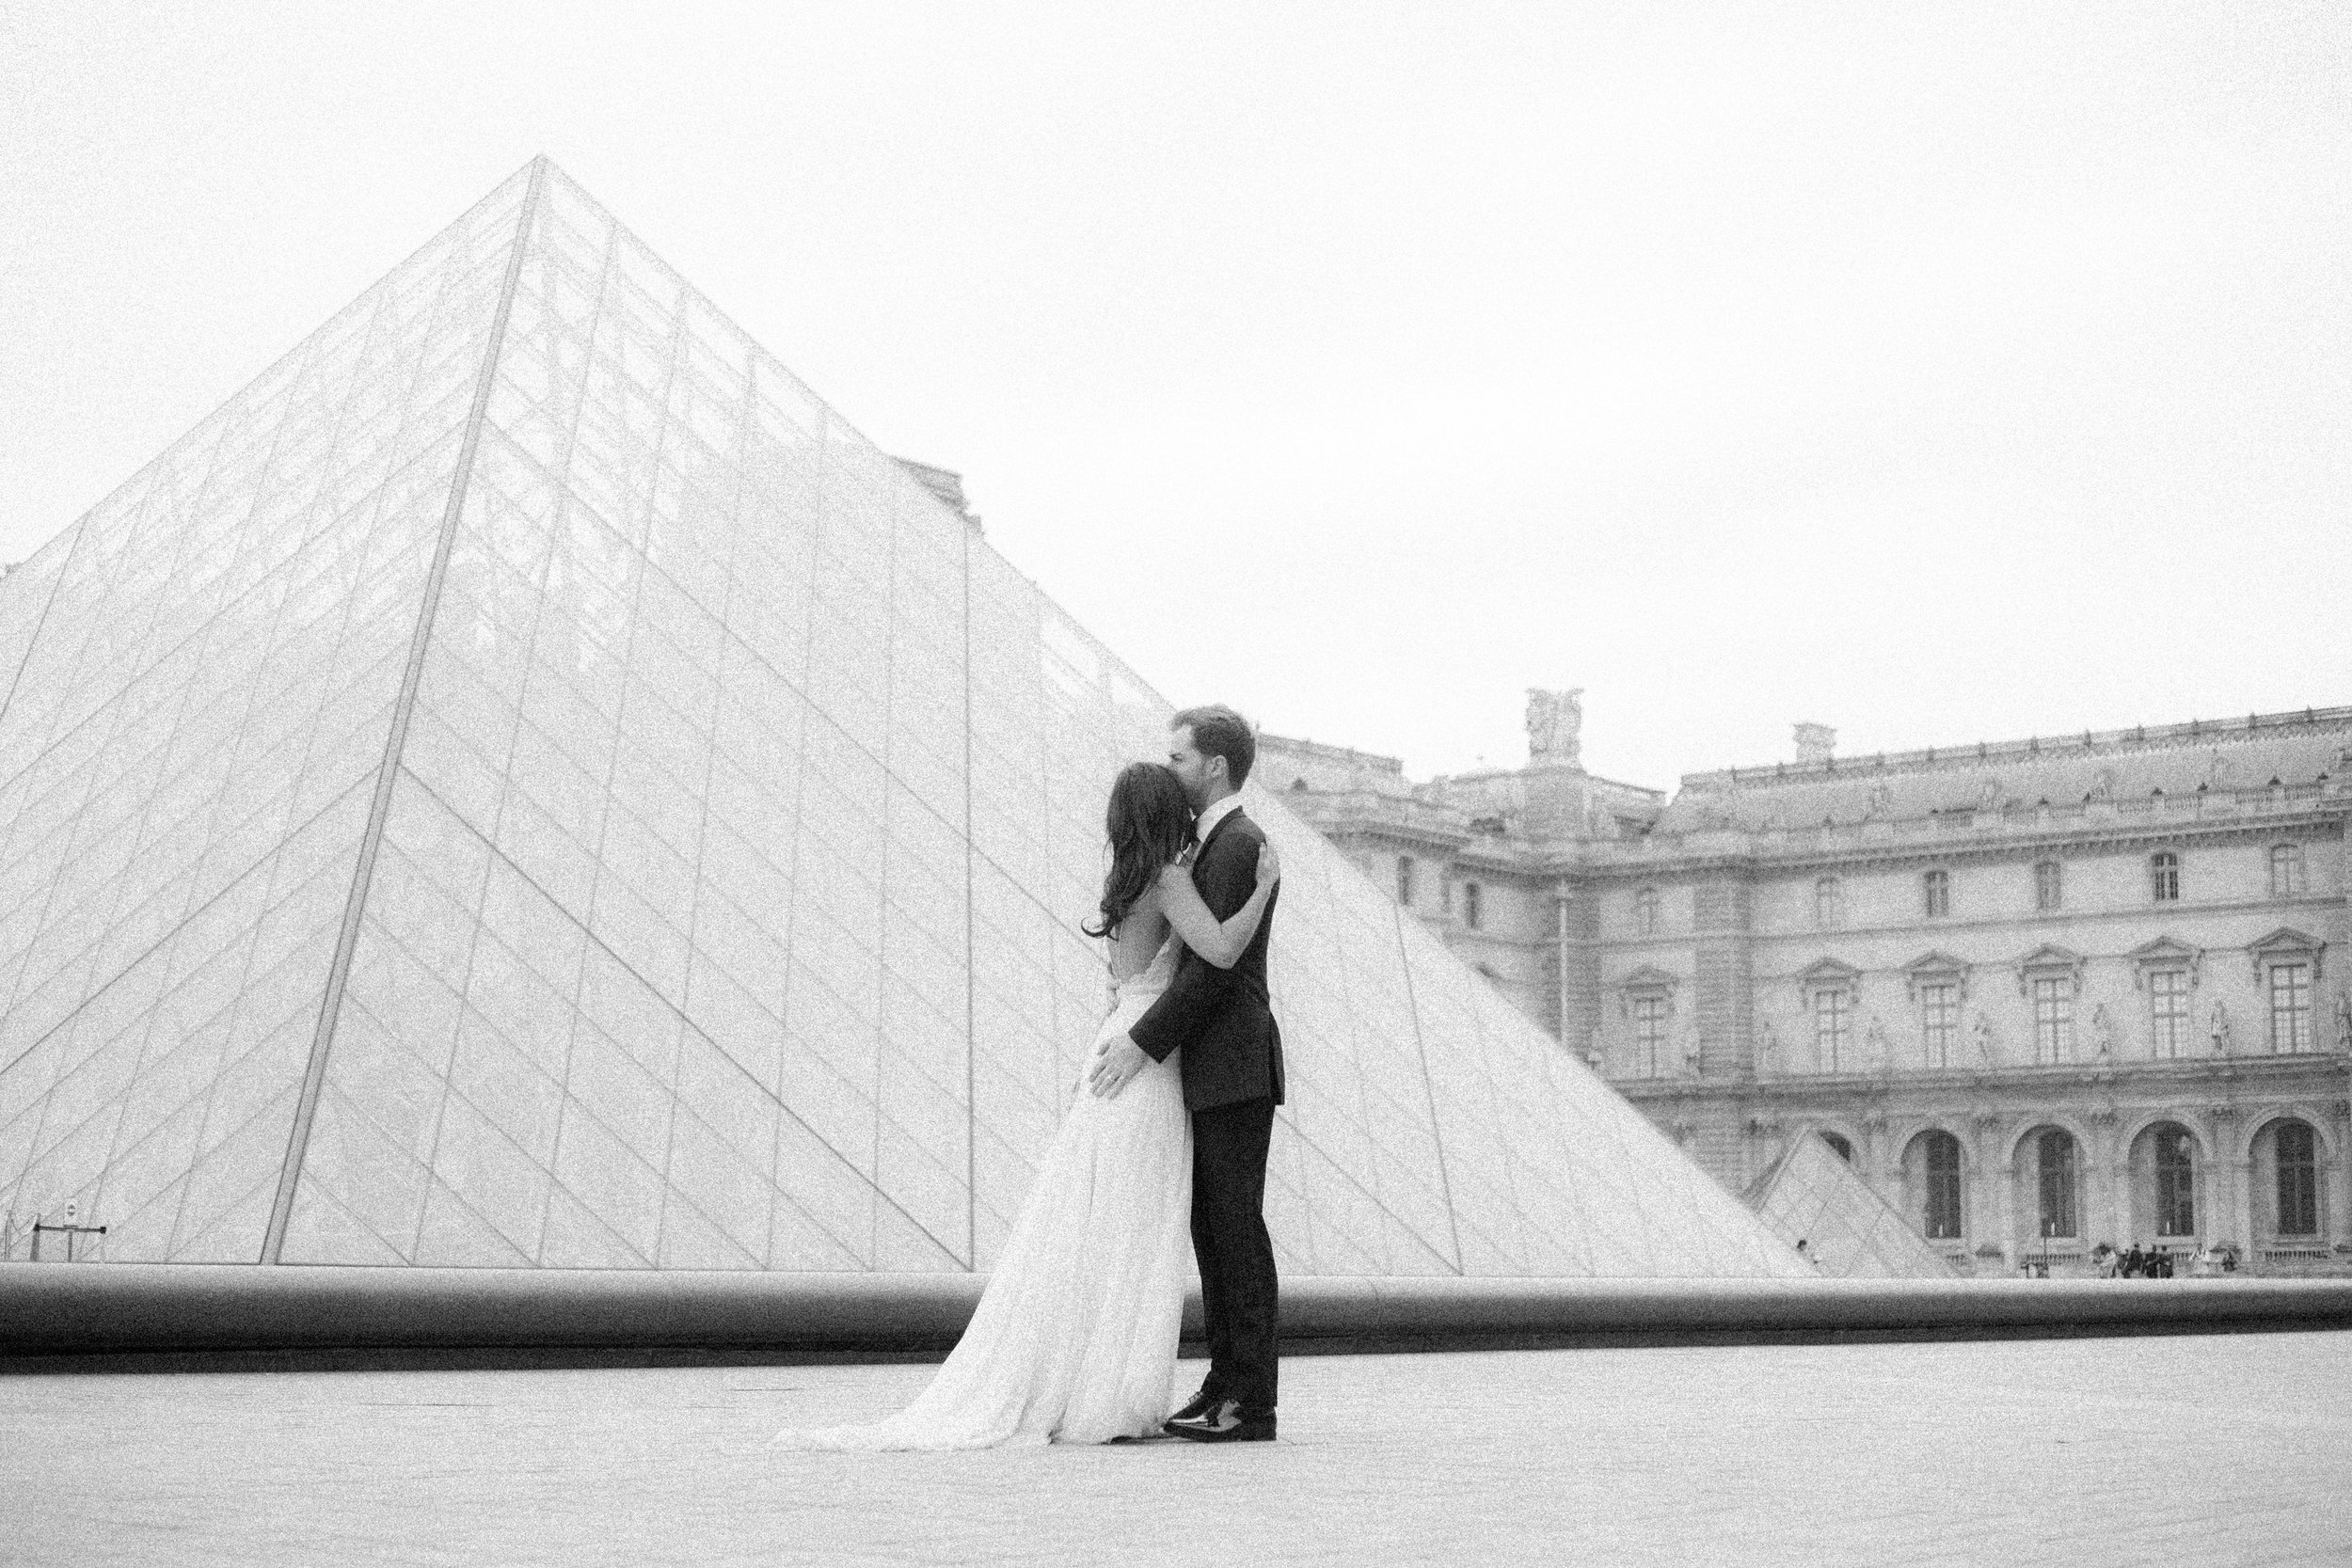 paris wedding photographer craig george hannah and mitch elopment-112.jpg